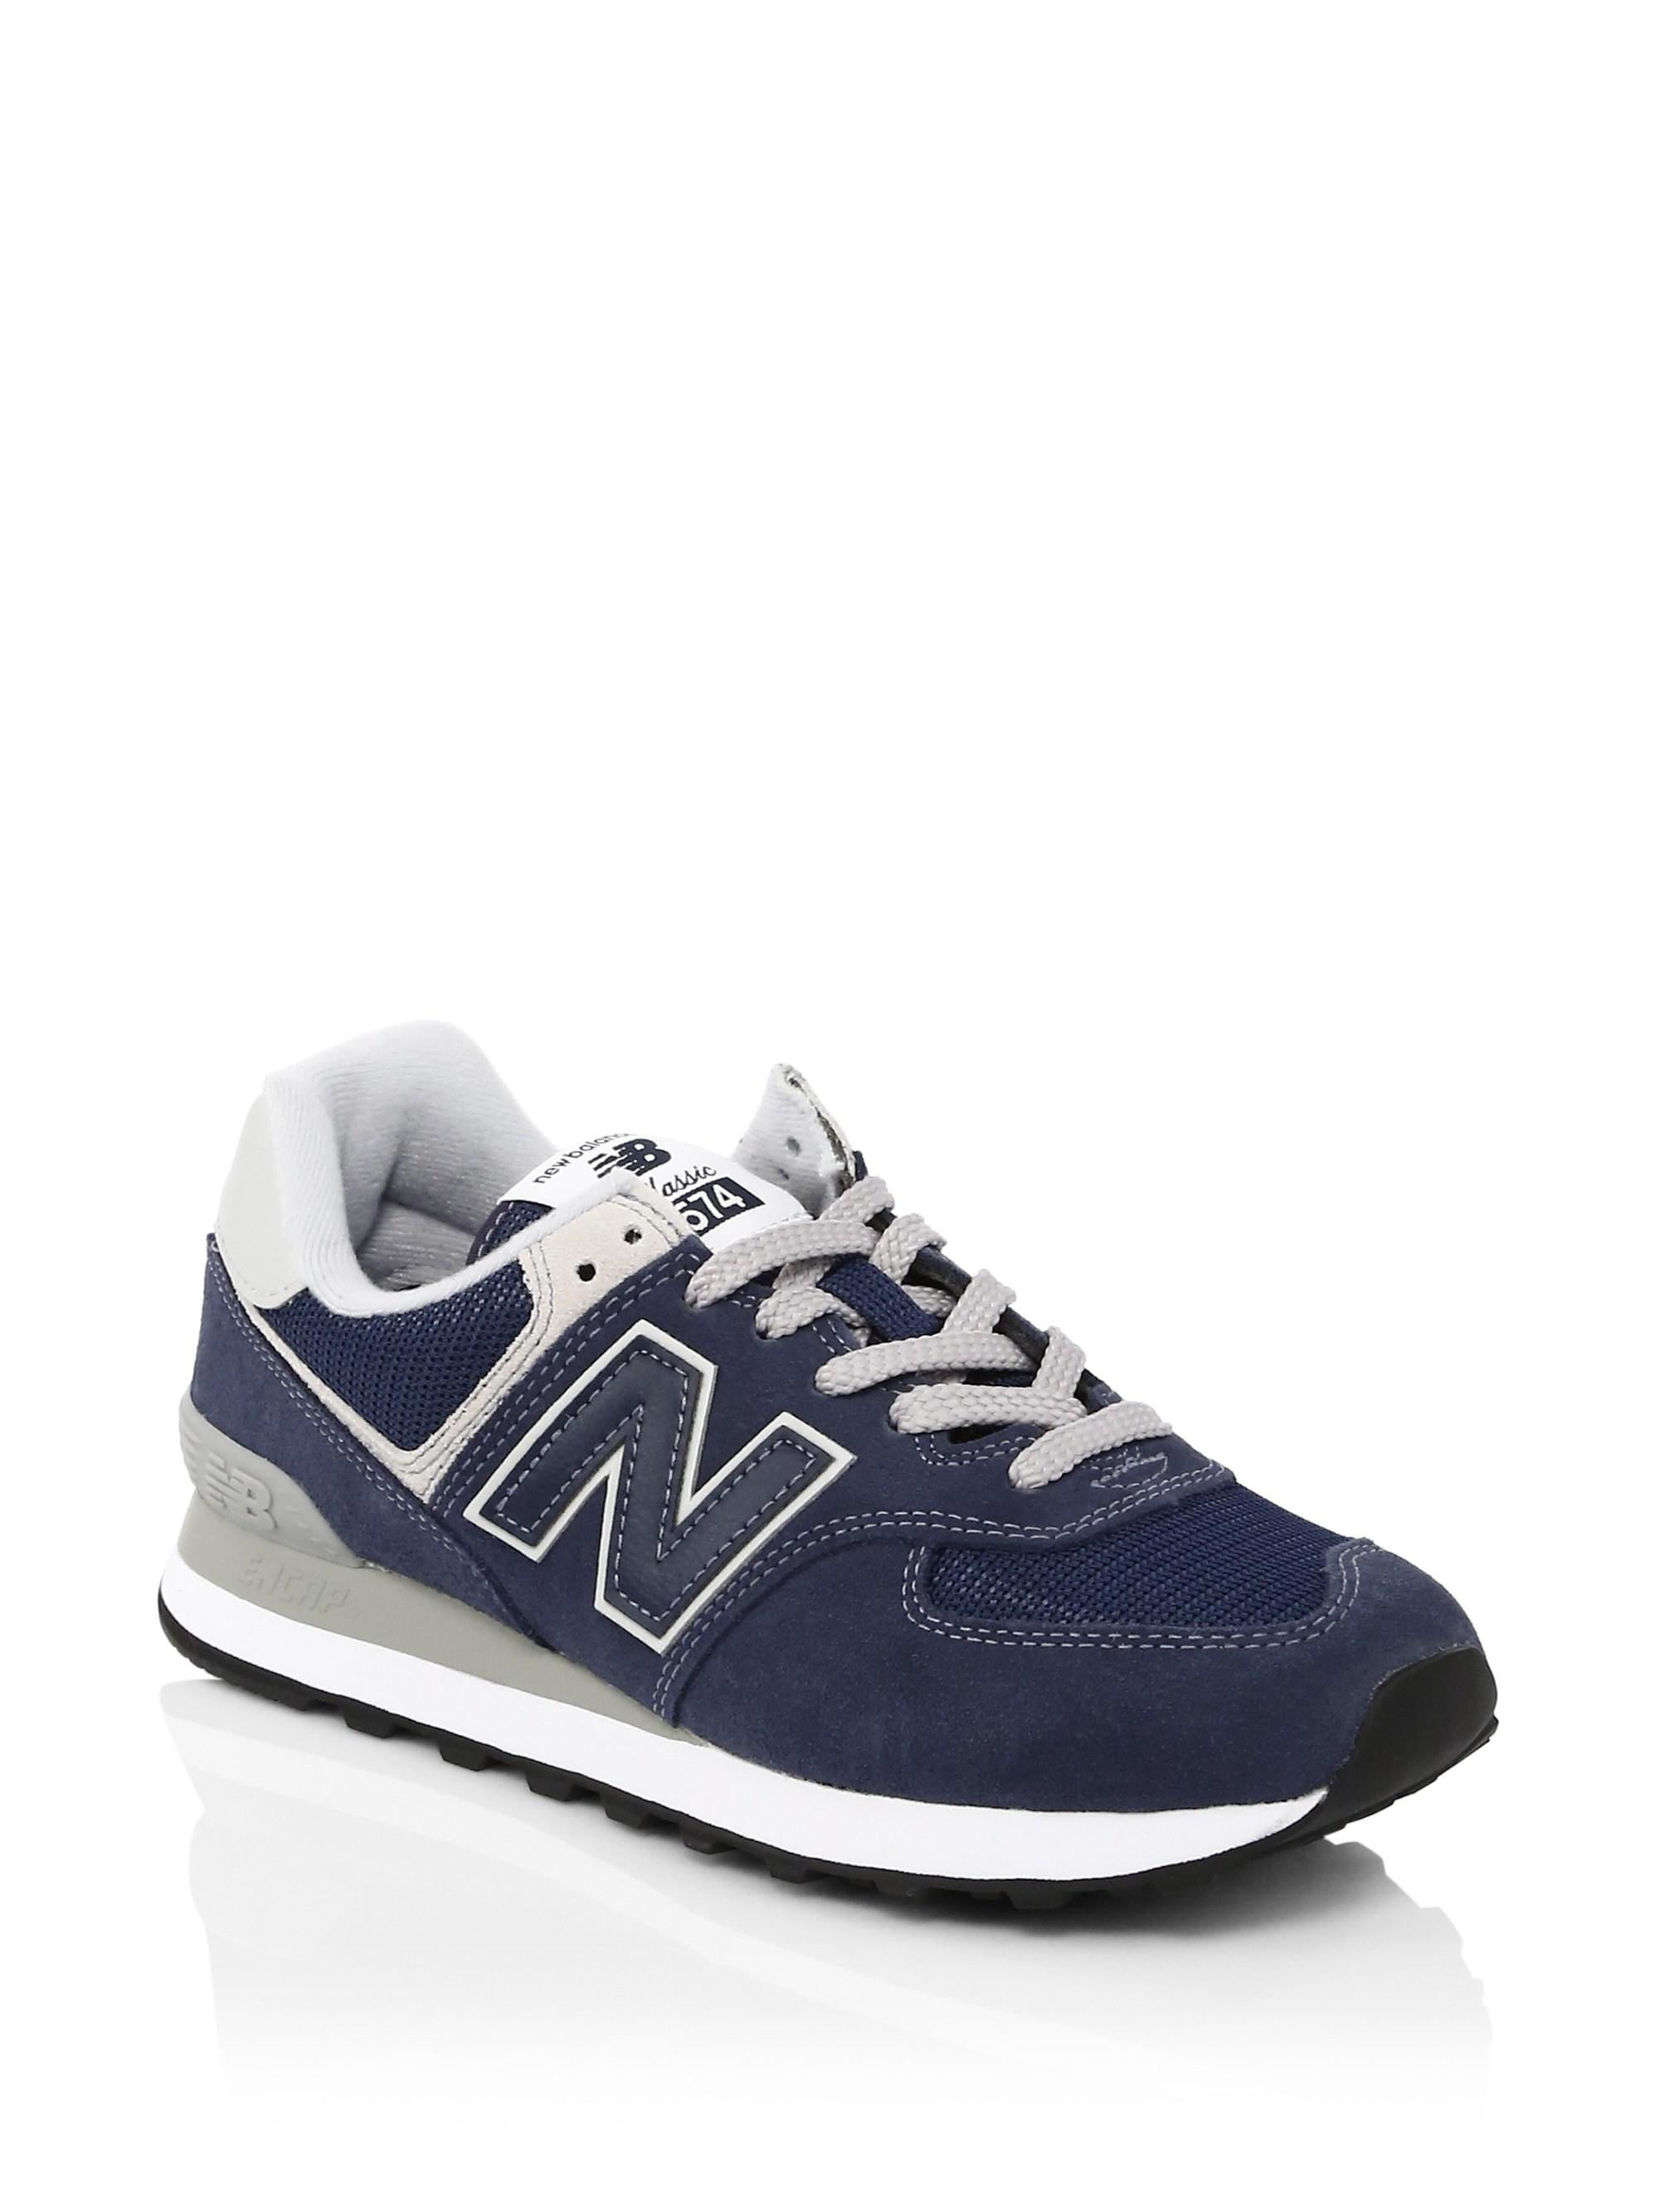 6f86946dfd502 New Balance Suede Mesh Sneakers in Blue for Men - Lyst